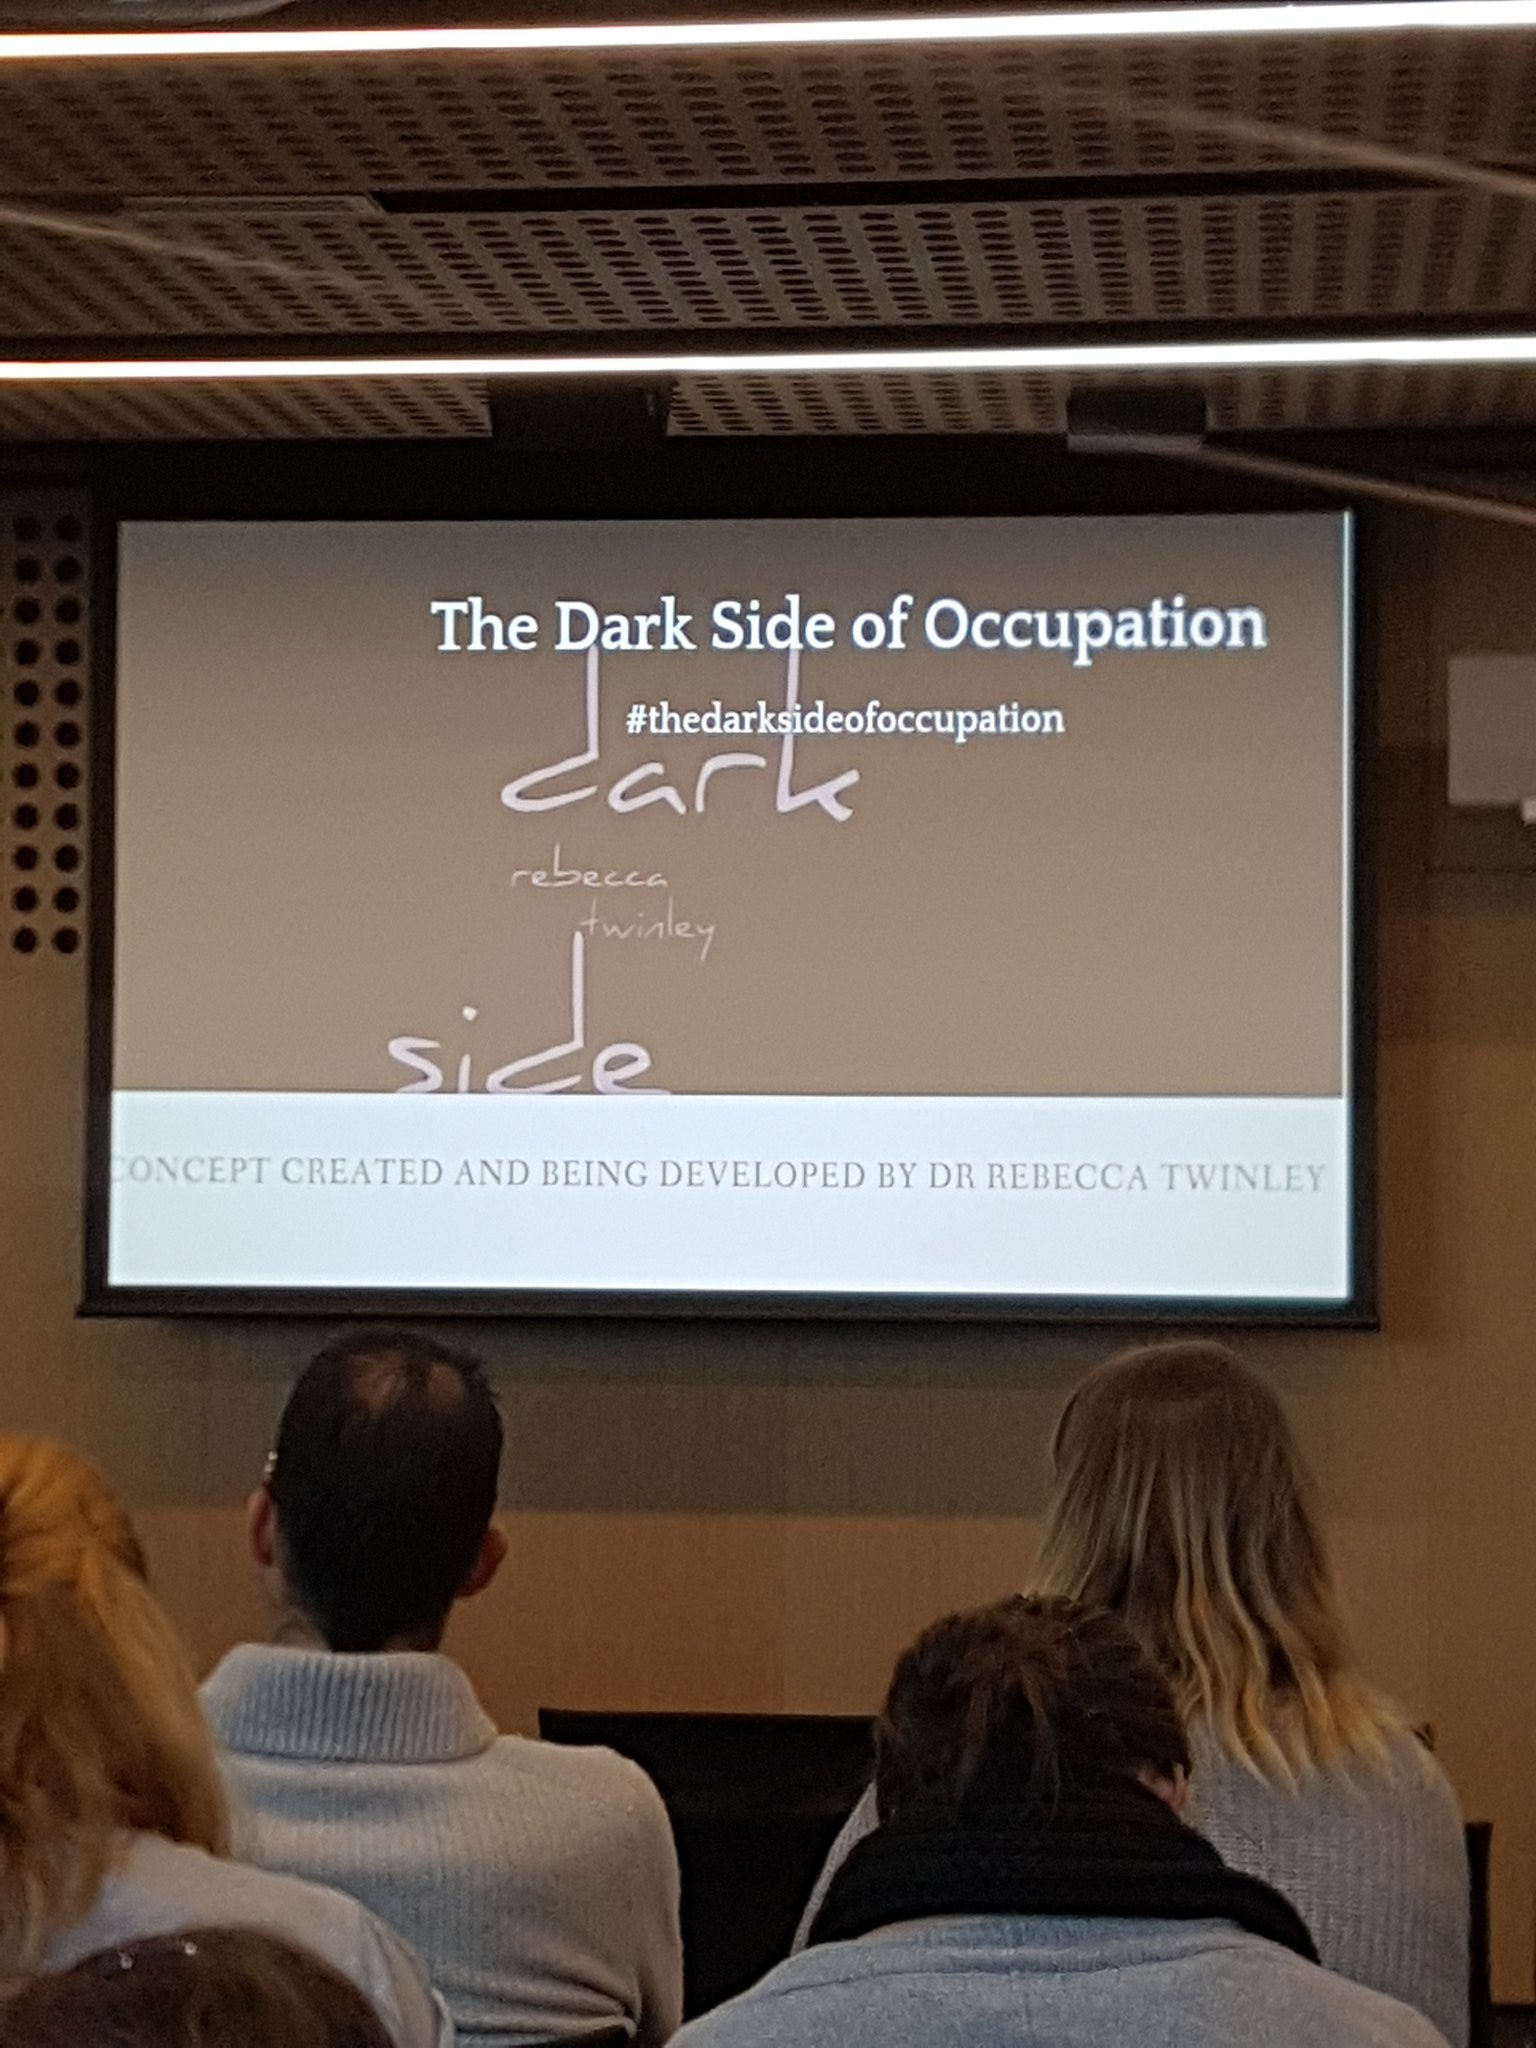 #mhotsymp2017 One of my favourite OT writers #thedarksideofoccupation https://t.co/F0vHrMcFEF